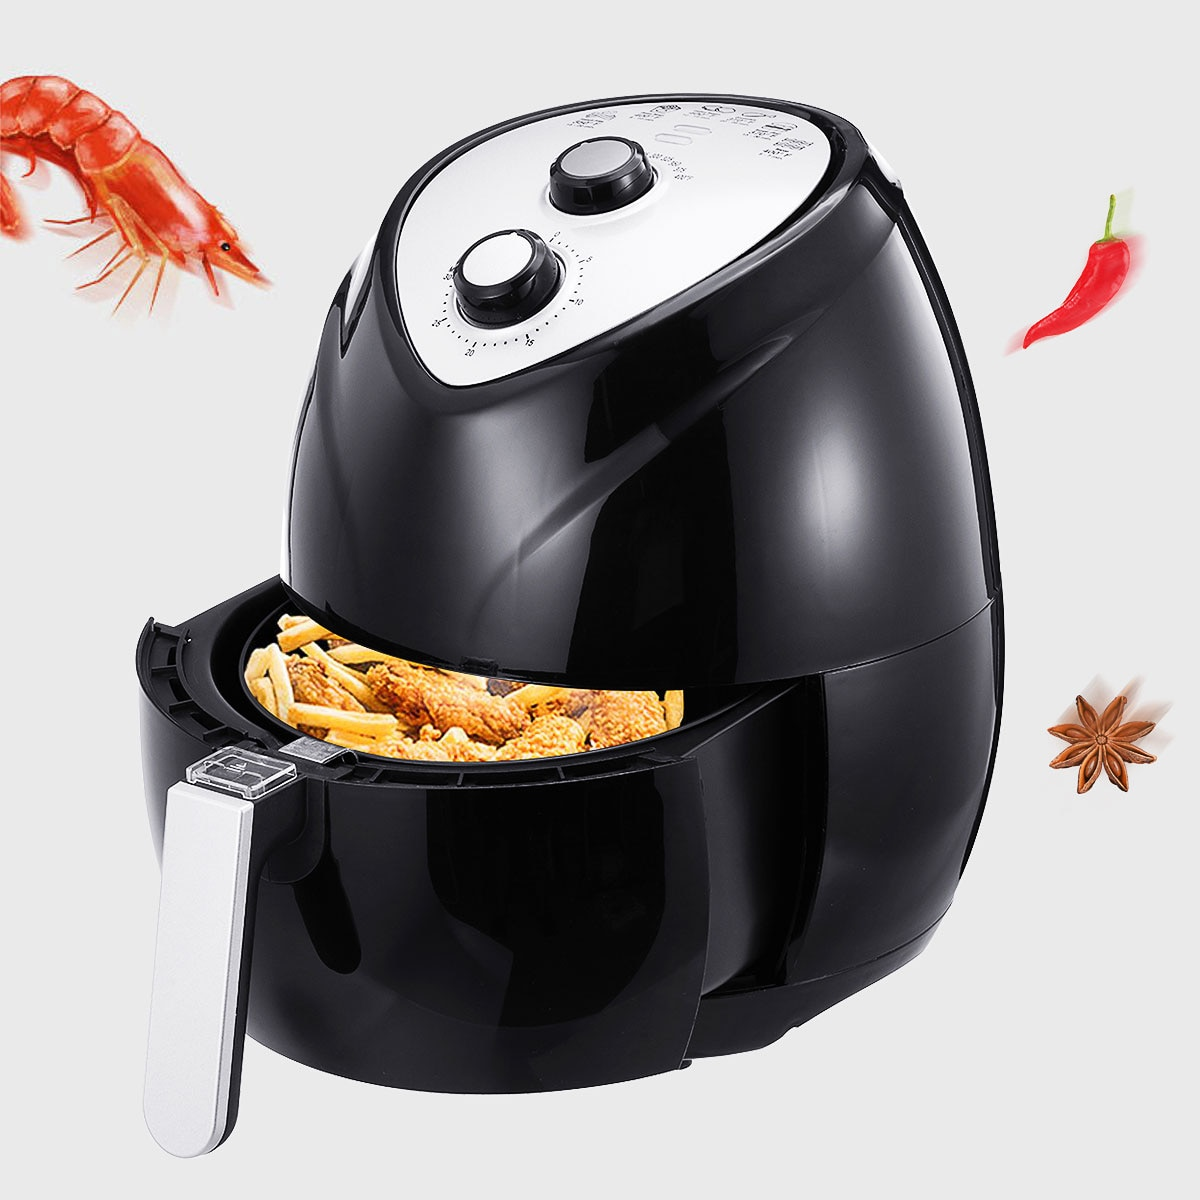 Buy 1400w 3 6l Oil Free Air Fryer Multifunction Cooker Smart Airfryer Pizza Maker Temperature Control Timing Kitchen Cooking Tools Online In India 4000412069820